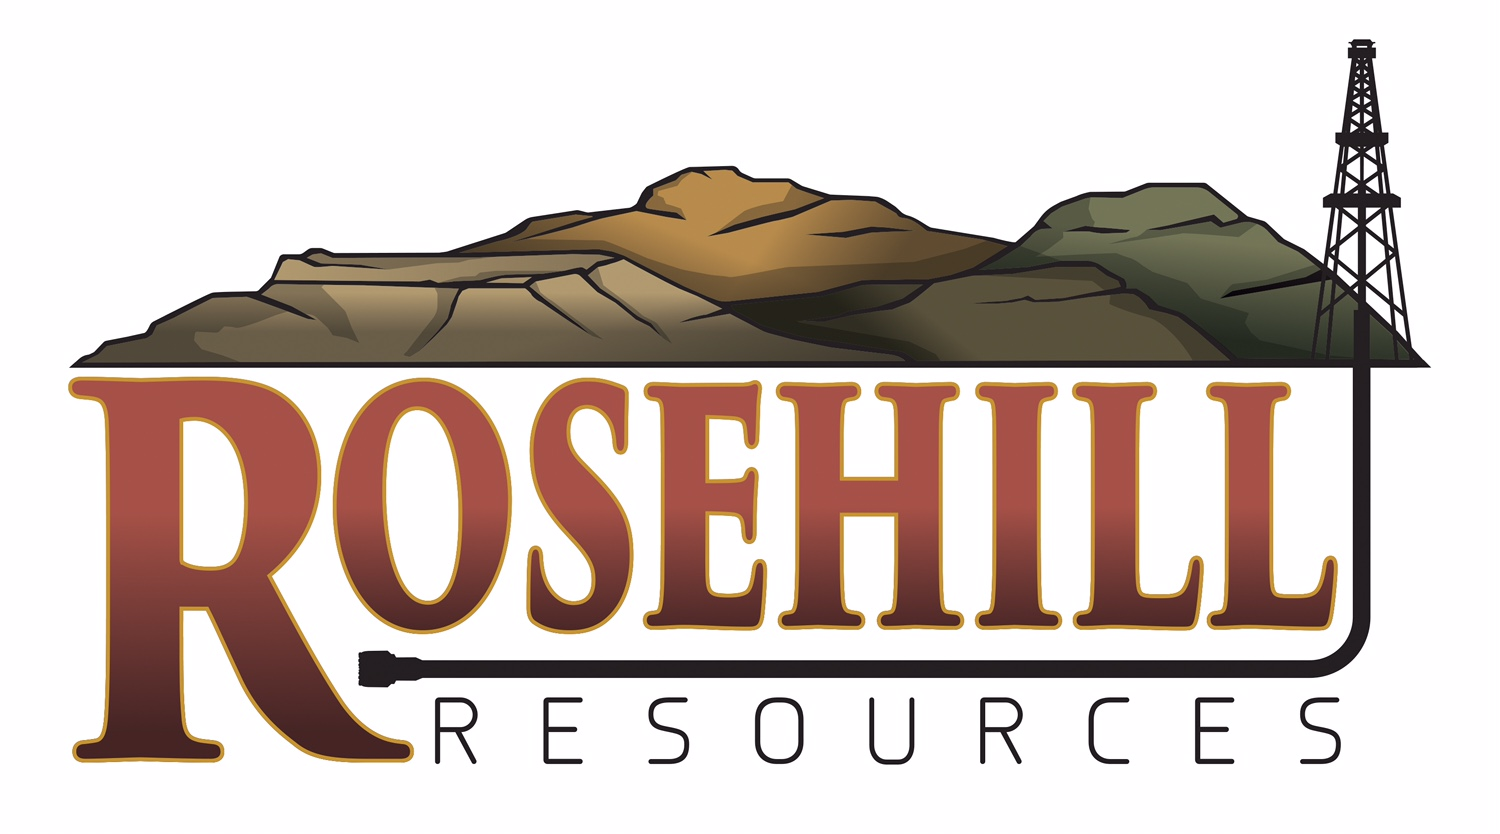 Rosehill Resources Announces 2018 Reserves and Fourth Quarter 2018 Production